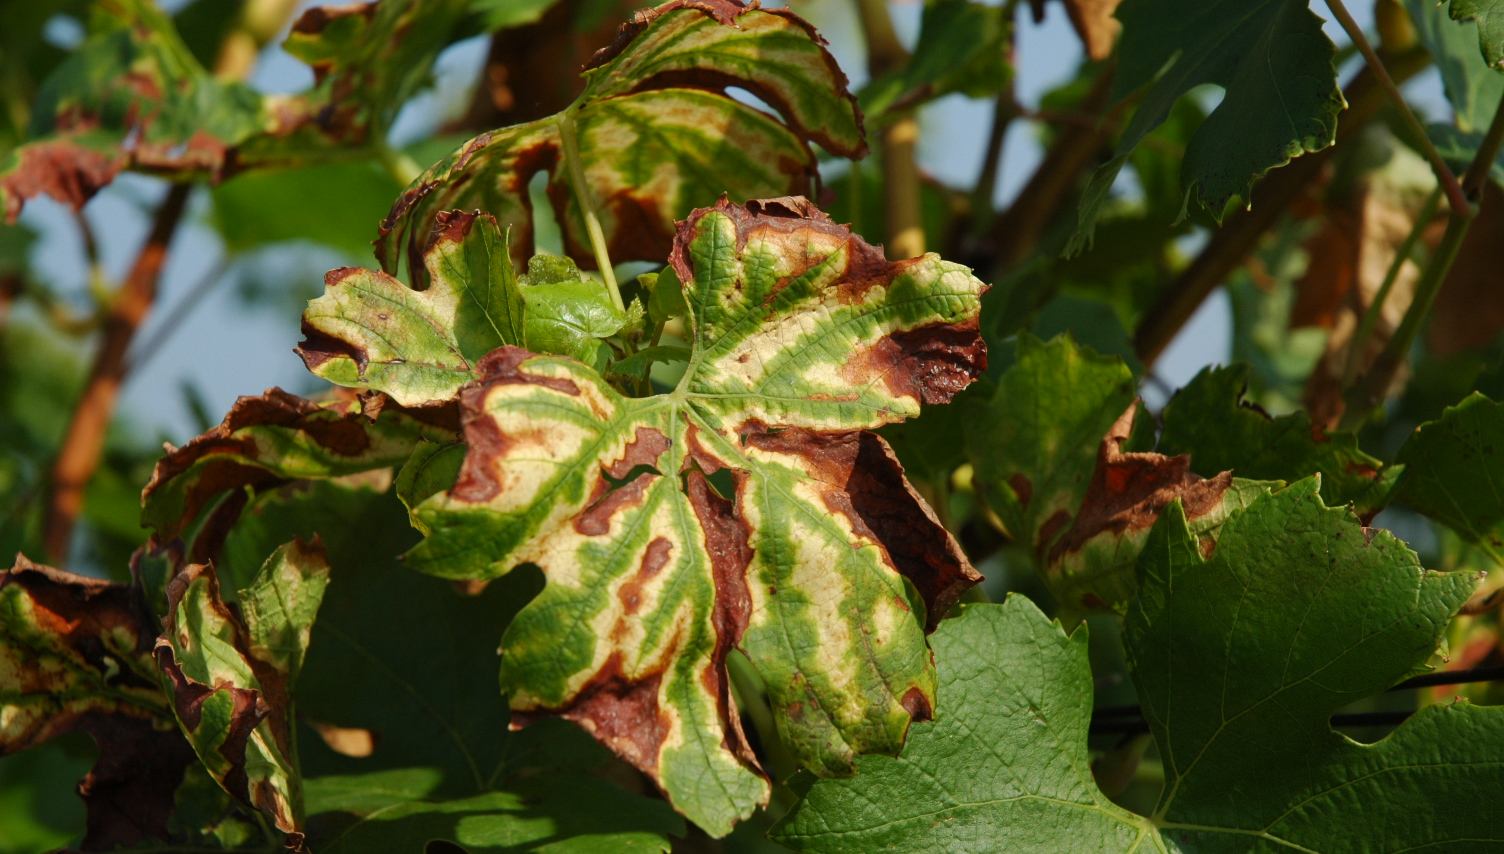 Esca - leaf damage